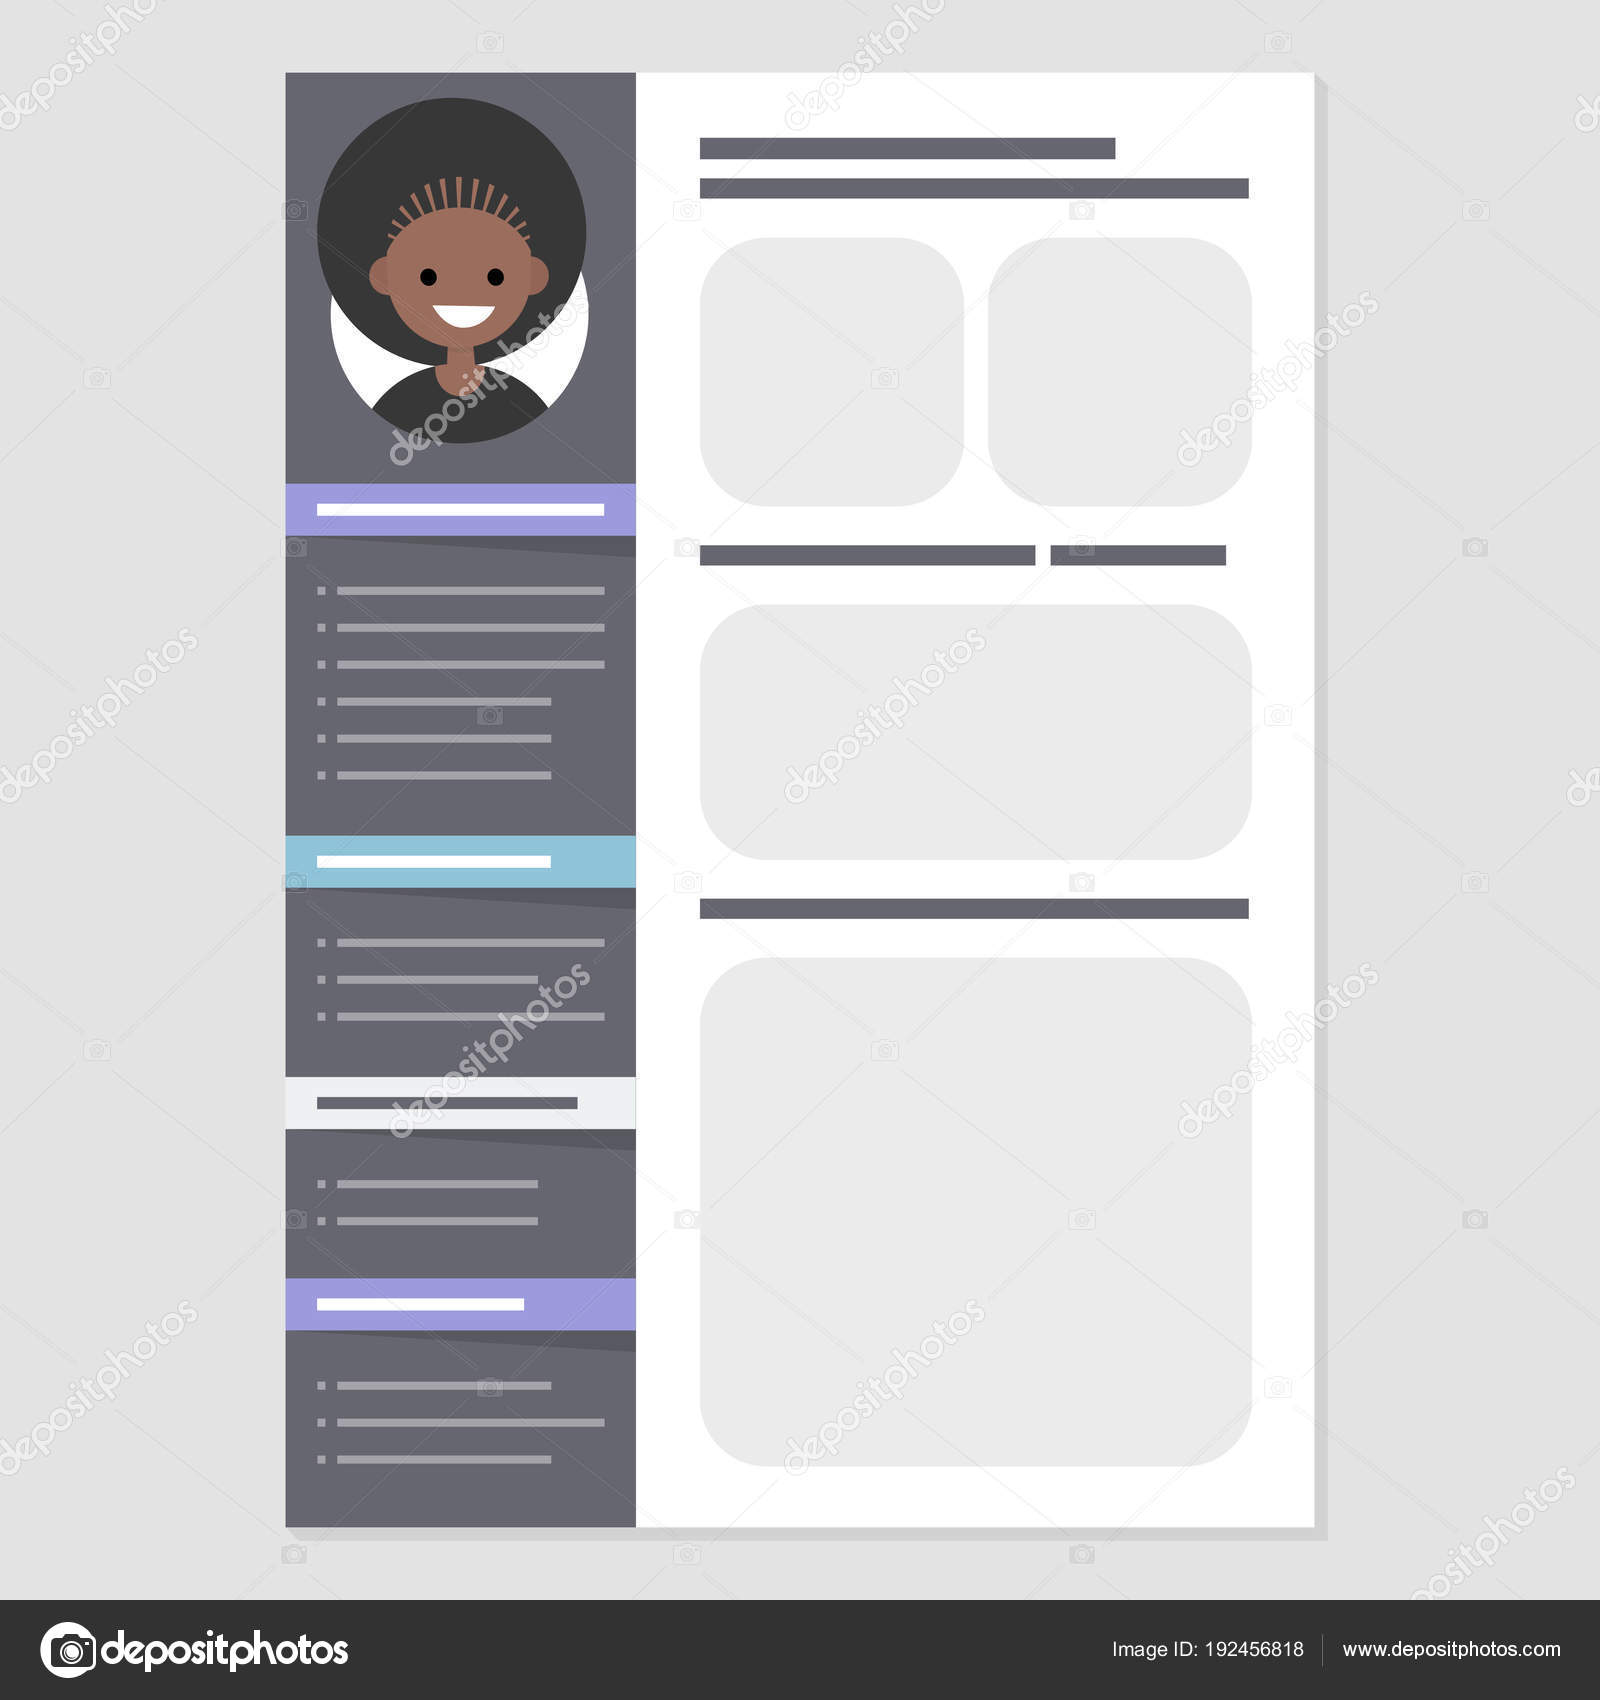 Looking for a job. CV template. Biography. Personal information ...